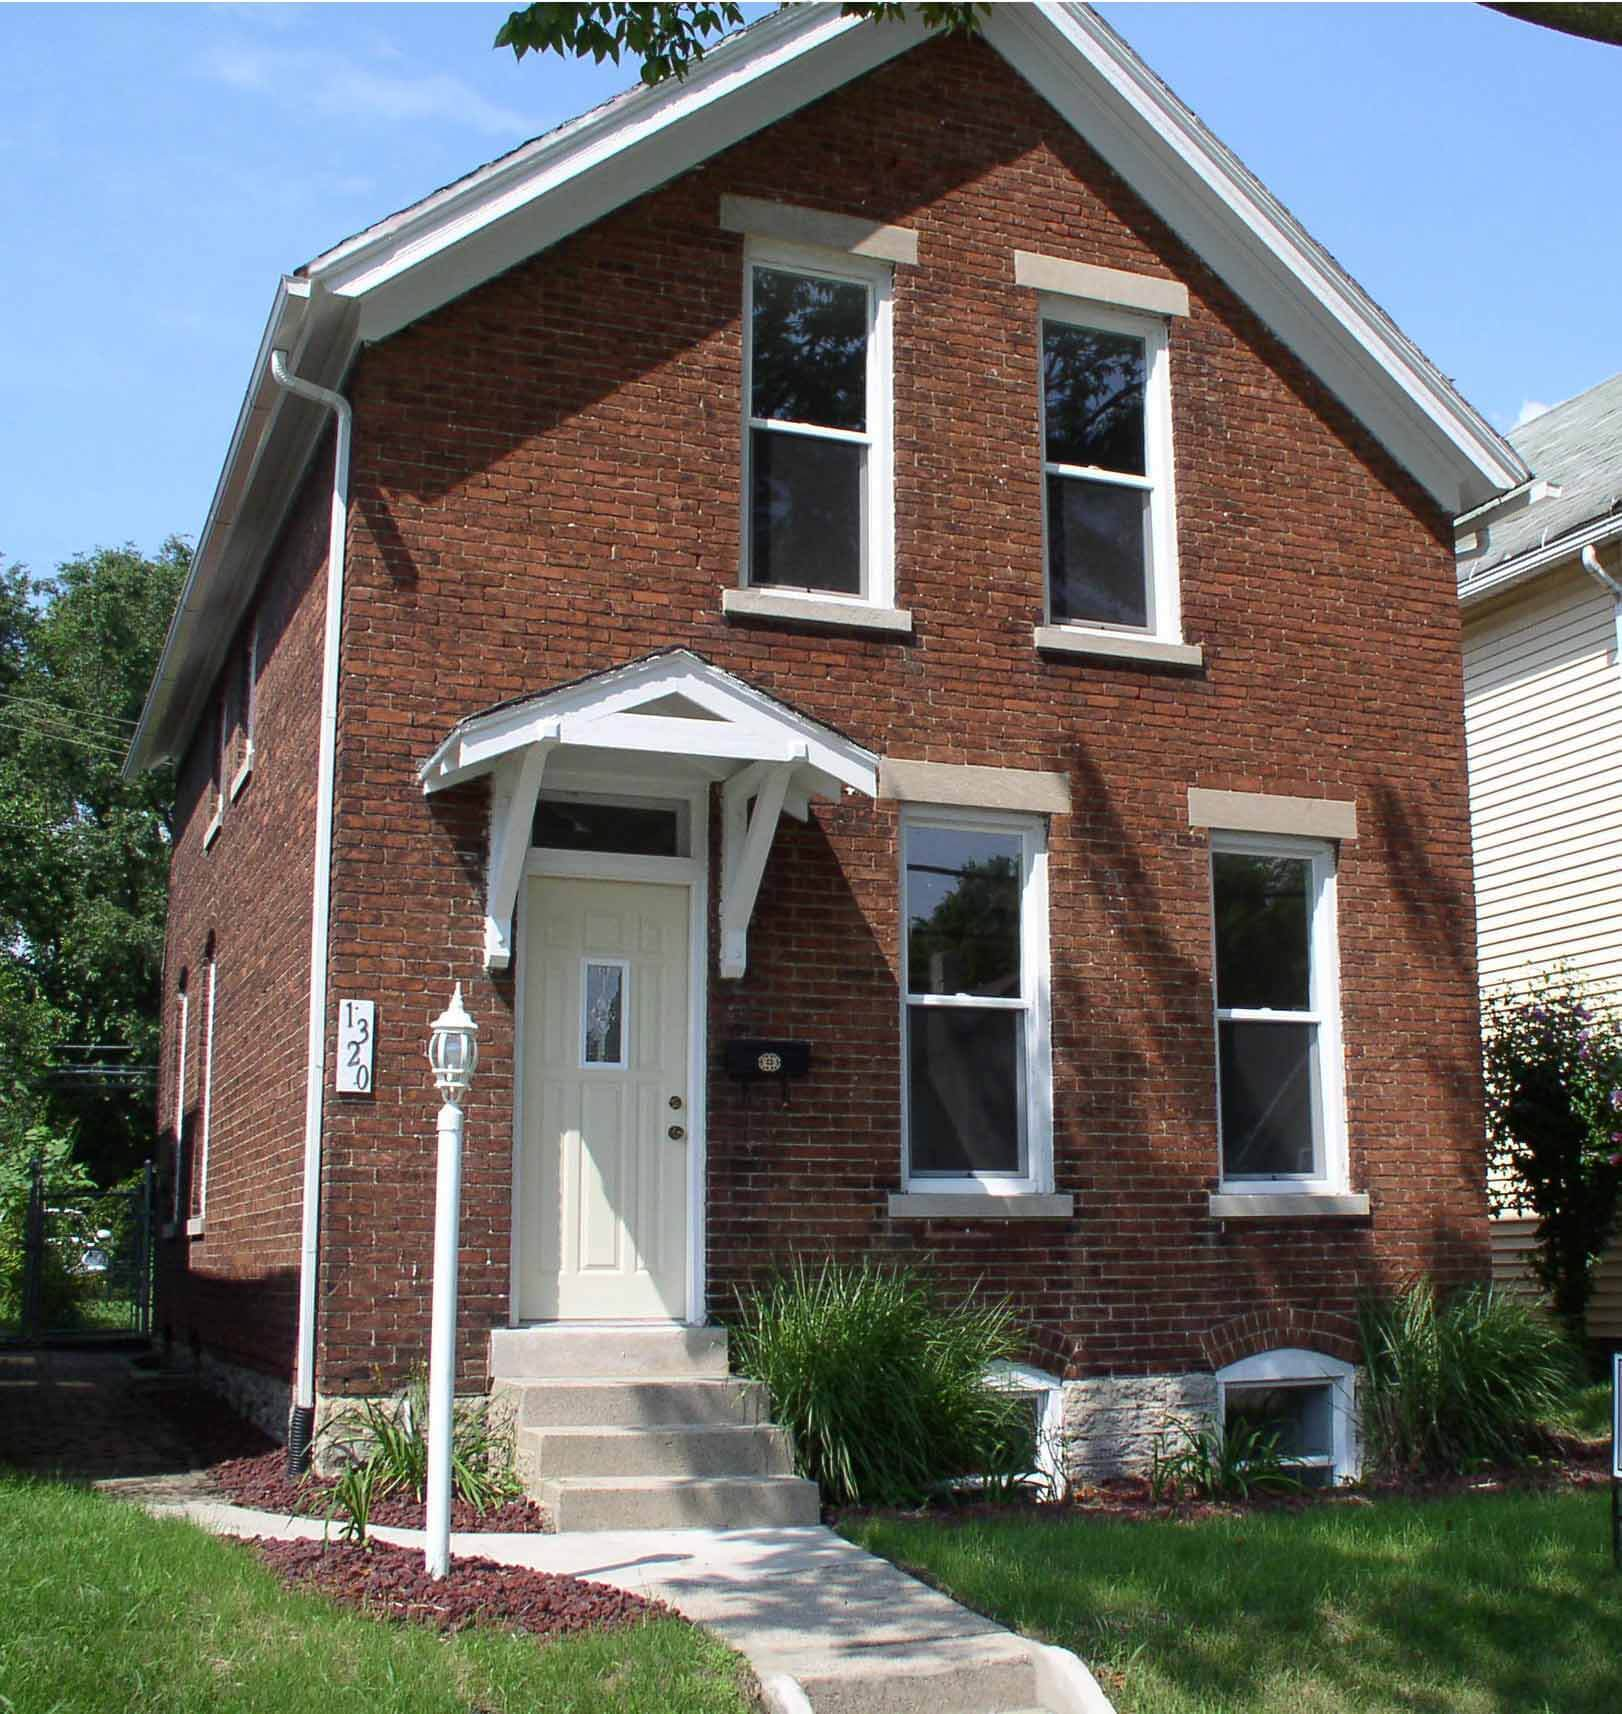 Homes For Rent By Zip Code: Solid Brick 2 Or 3 Bed Fort Wayne Home W/ Daylight